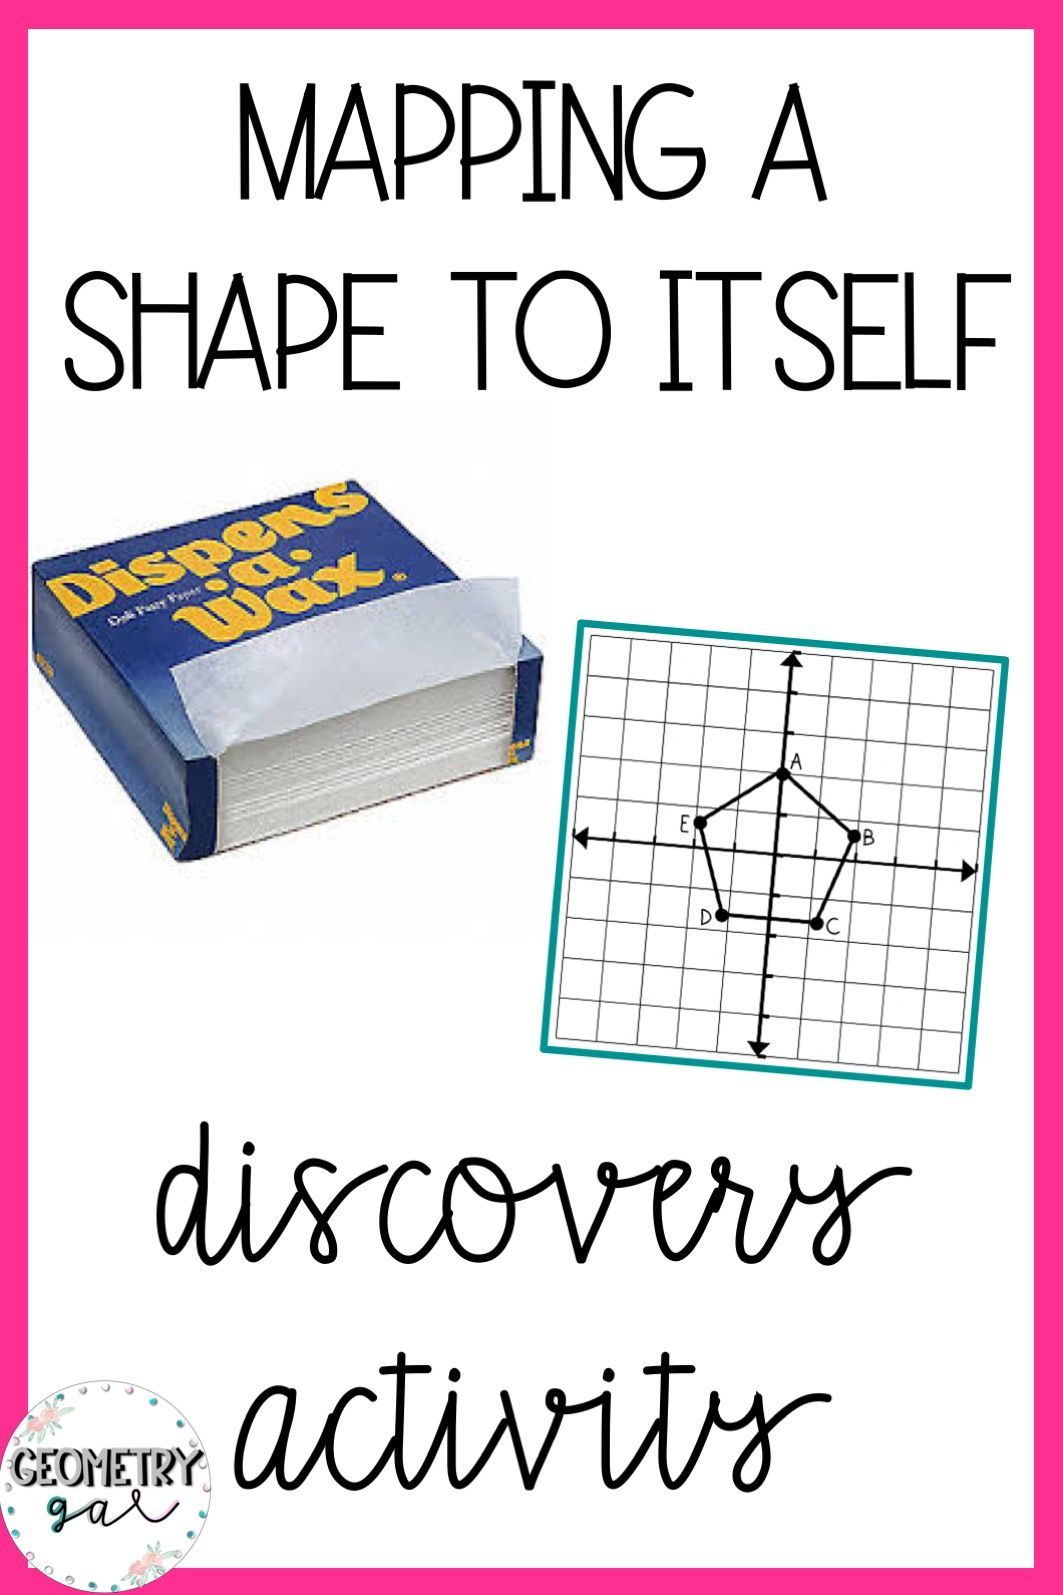 Geometry Lesson Mapping A Shape To Itself